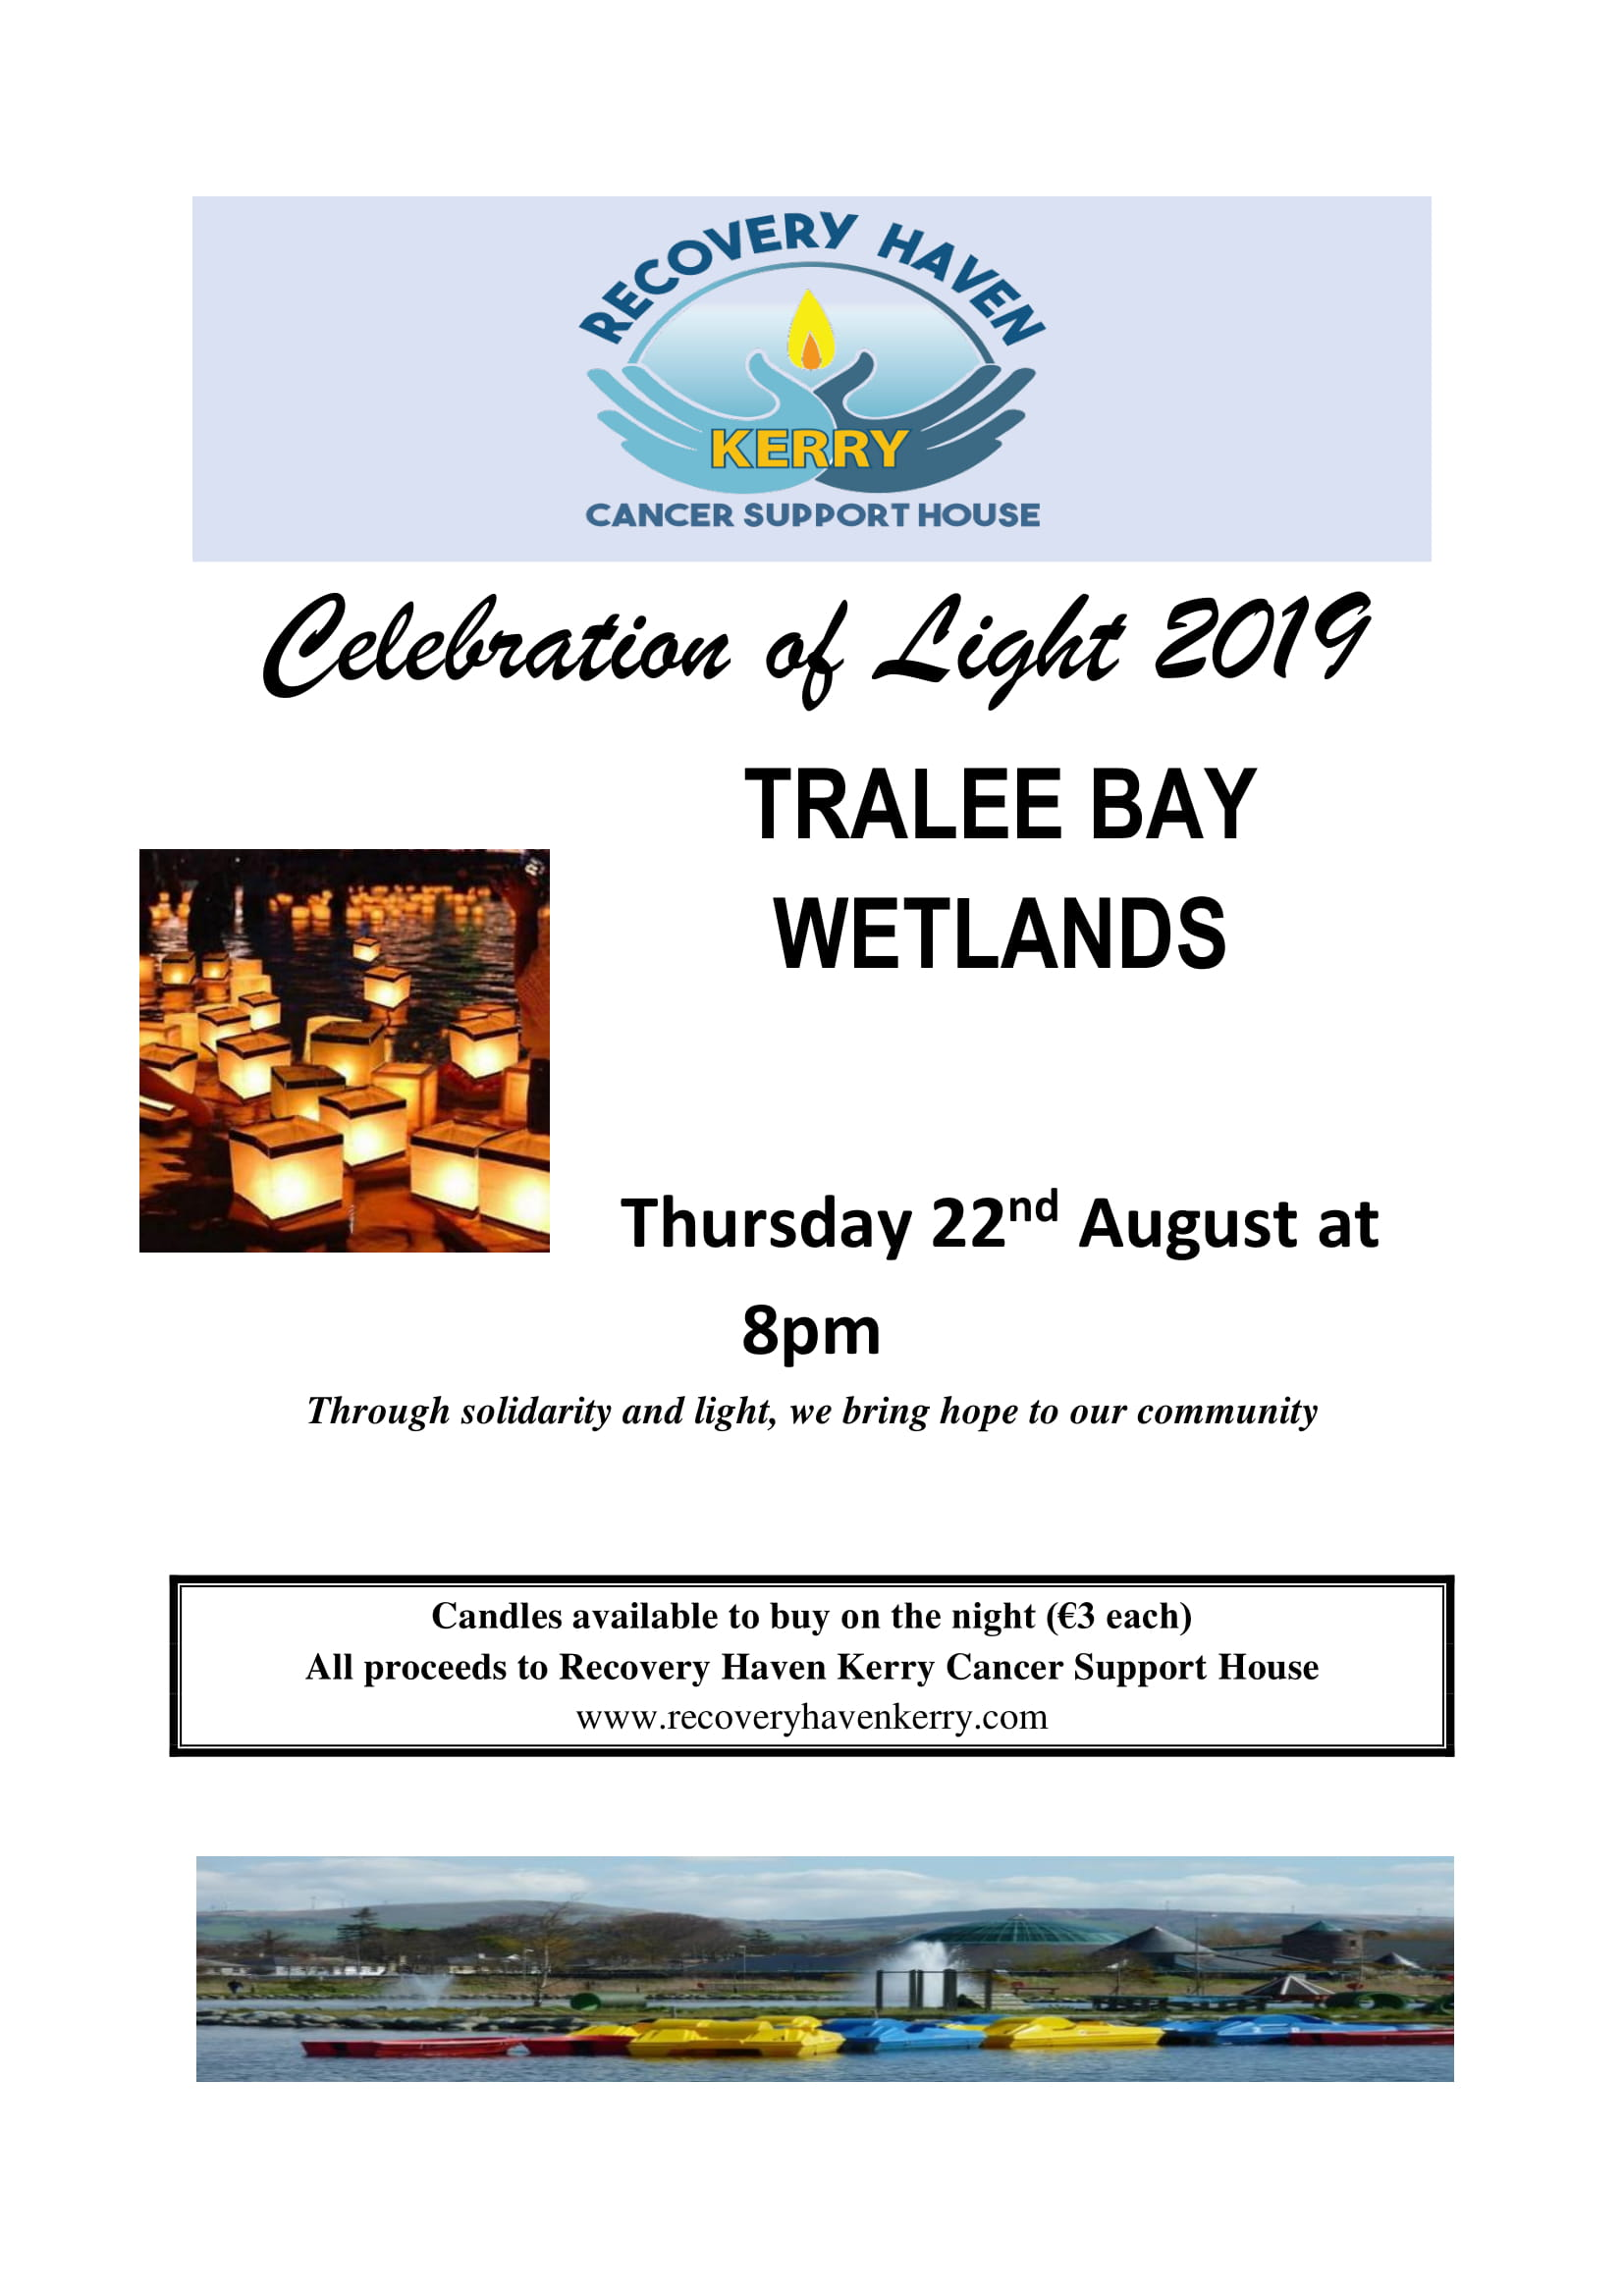 Wetlands 2019 Thurs 22nd August at 7